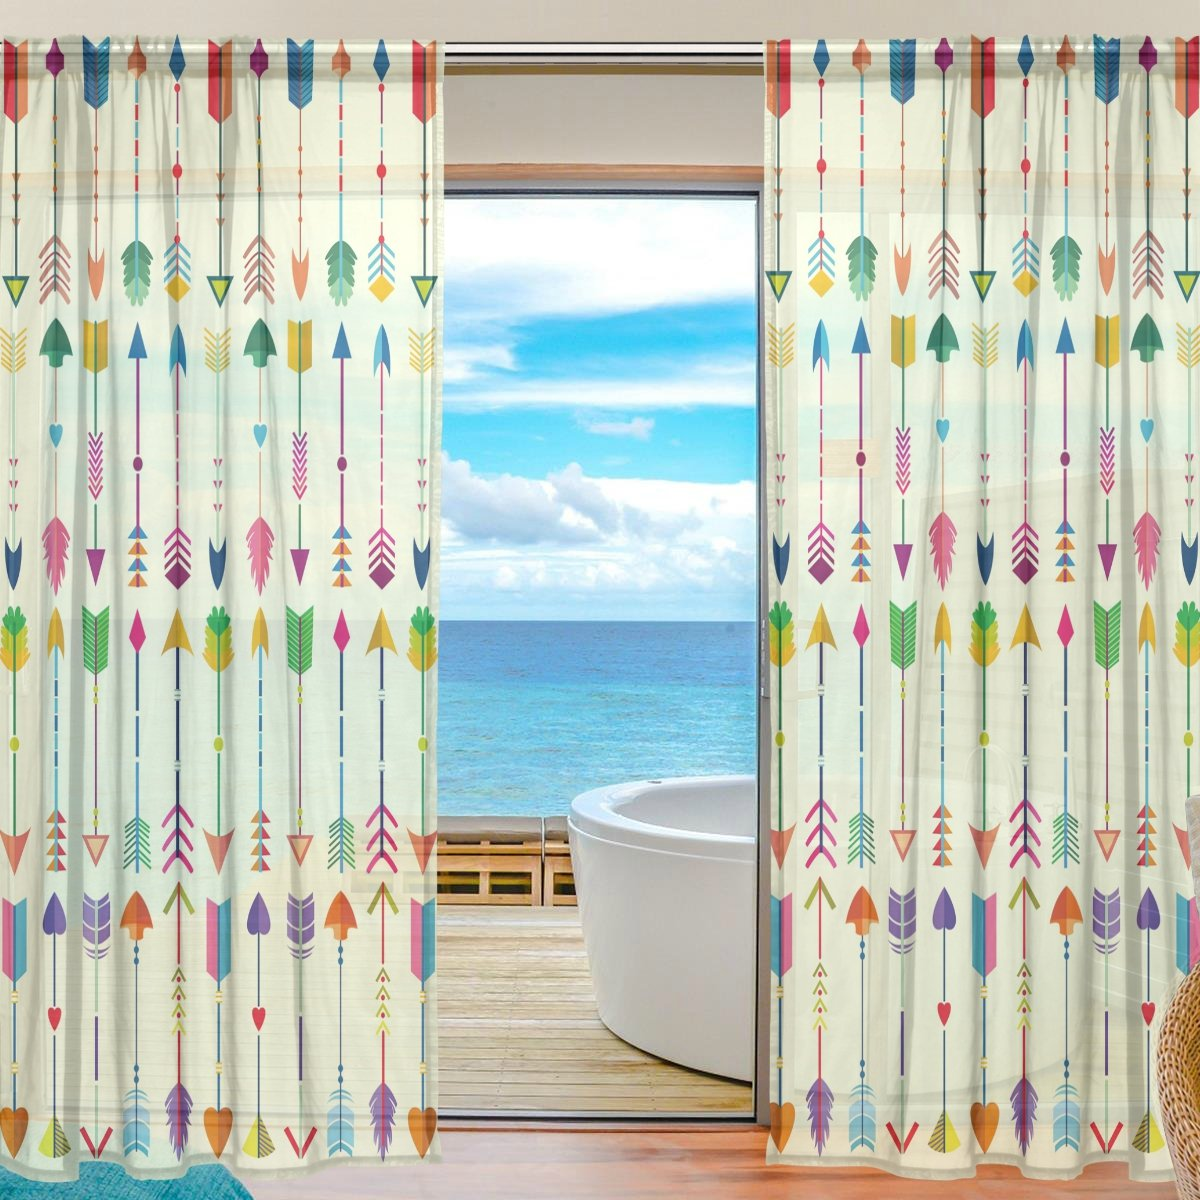 SEULIFE Window Sheer Curtain, Tribal Ethnic Feathers Arrow Pattern Voile Curtain Drapes for Door Kitchen Living Room Bedroom 55x78 inches 2 Panels